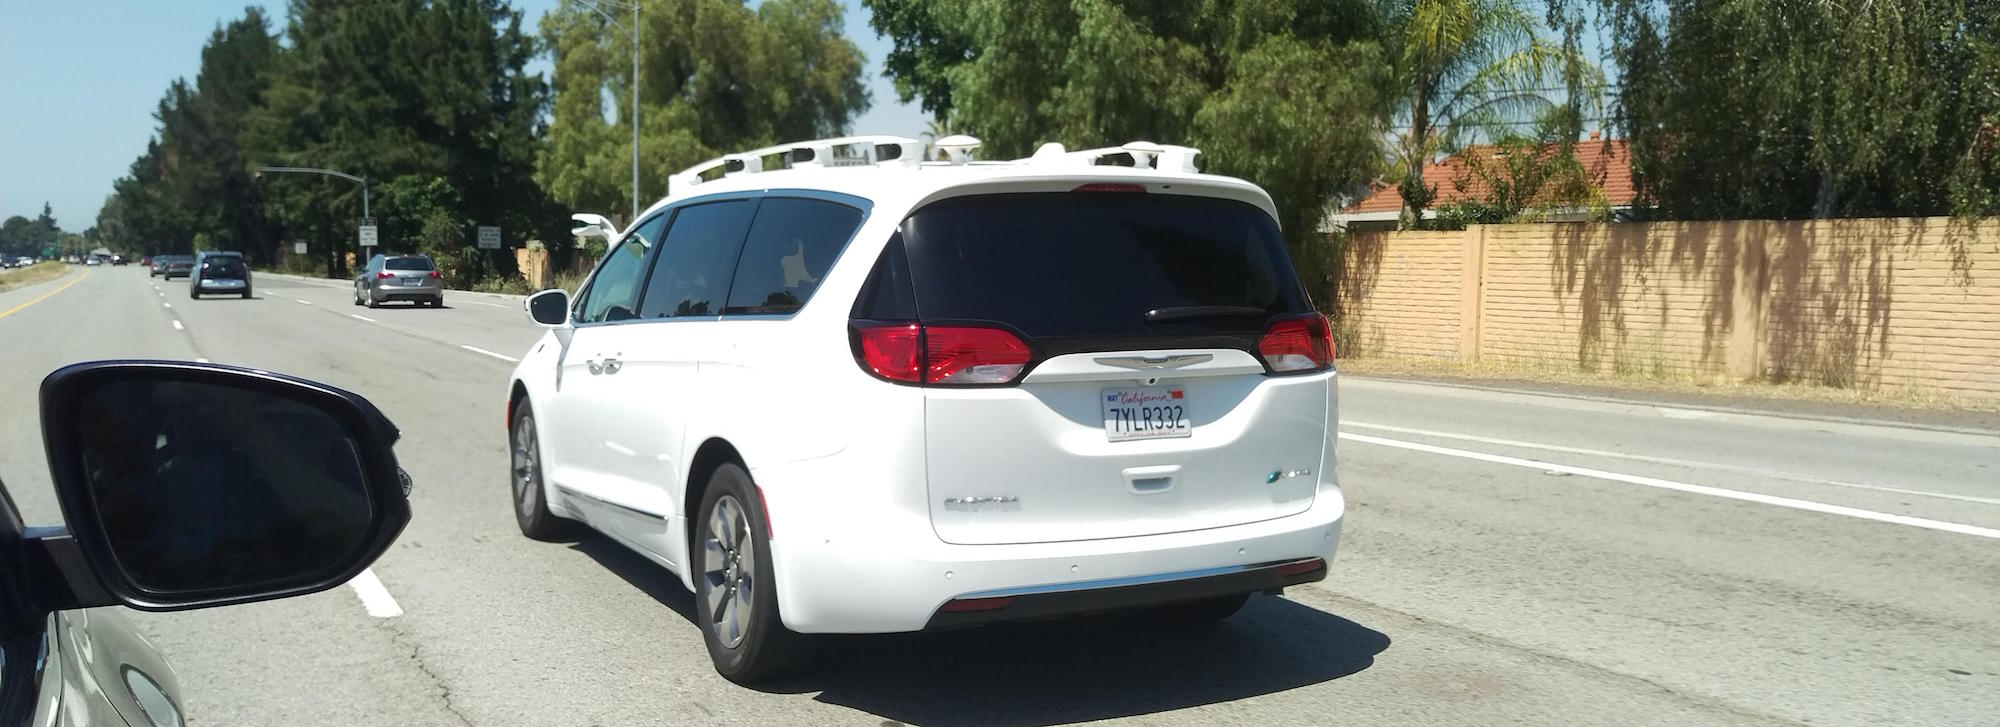 Unknown Self-Driving Pacifica Spotted On Highway – The Last